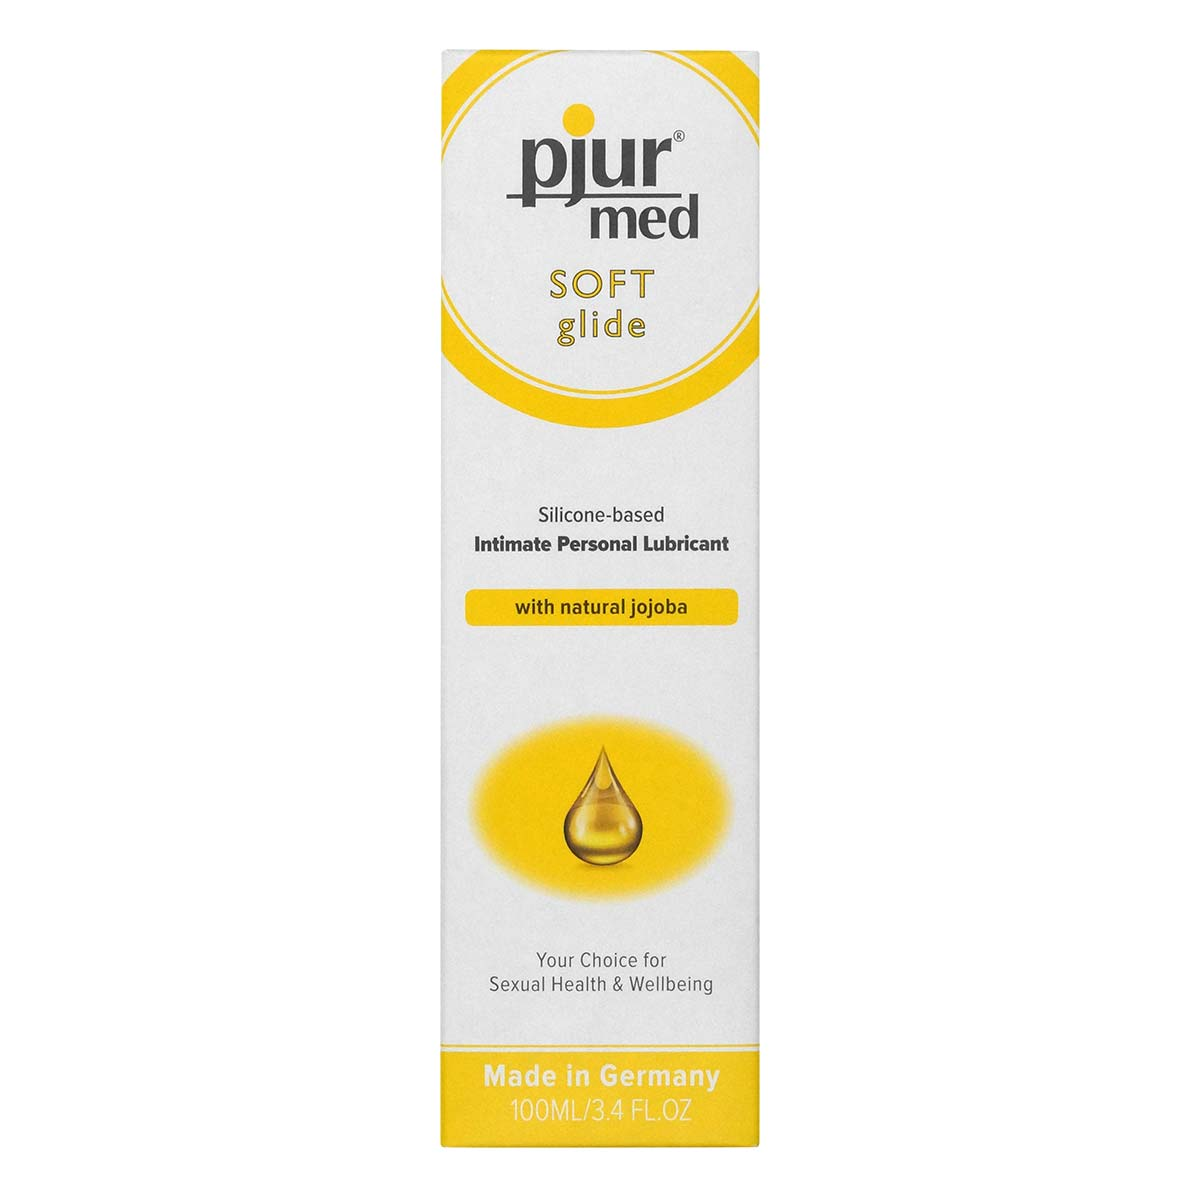 pjur med SOFT glide 100ml Silicone-based Lubricant